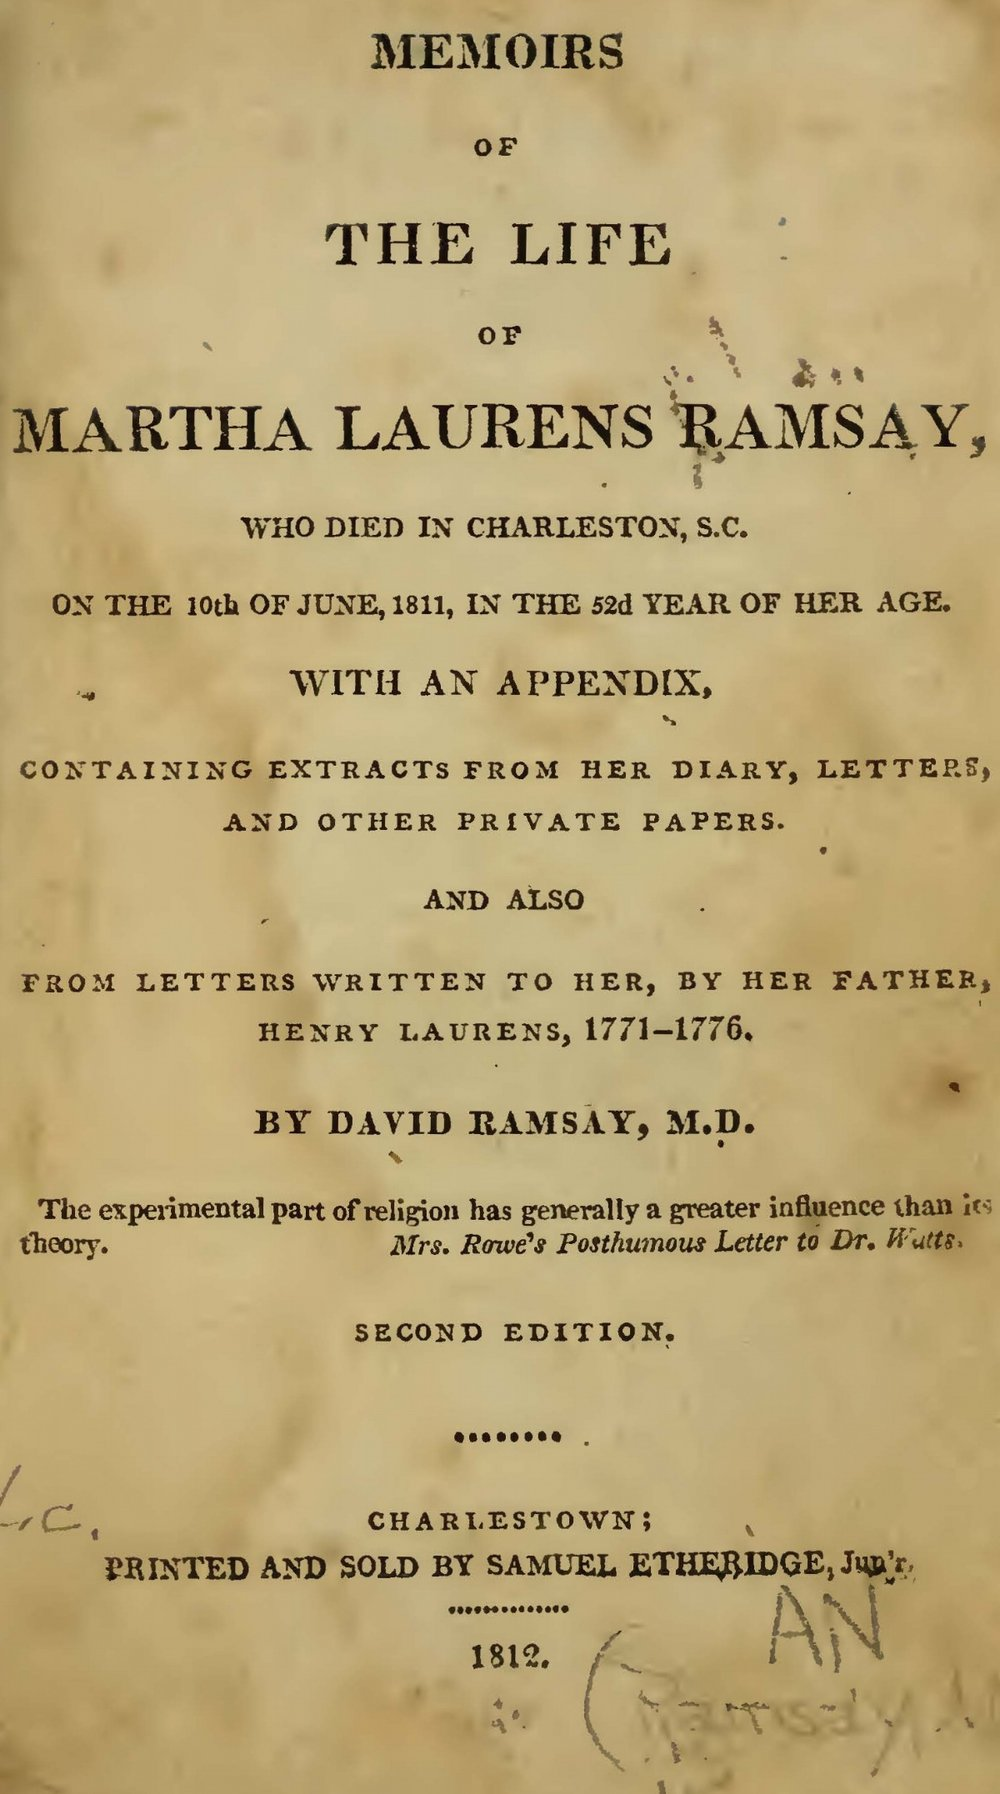 Ramsay, David, Memoirs of the Life of Martha Laurens Ramsay Title Page.jpg